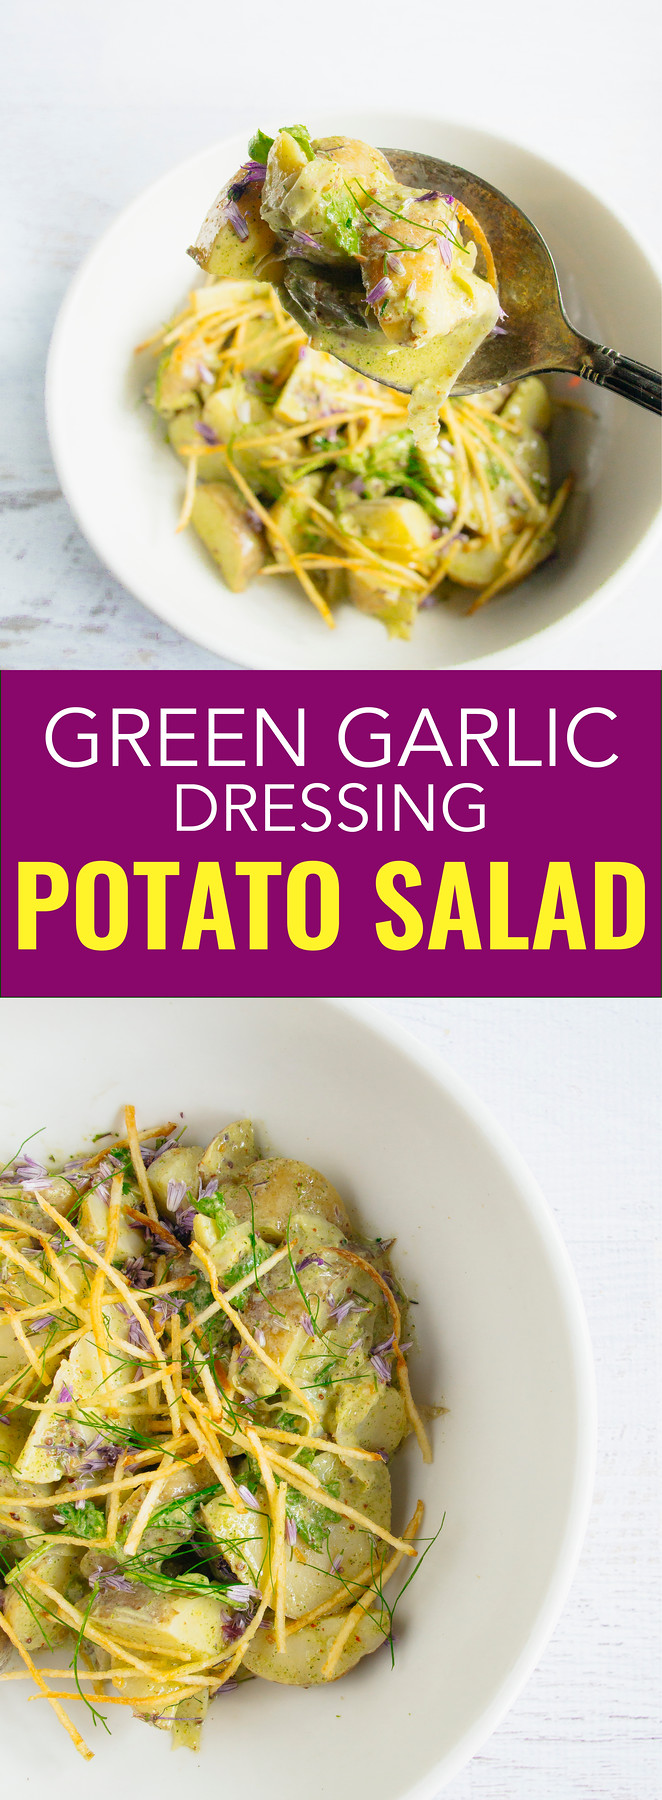 This green garlic potato salad dressing is so addictive and tastes even better the next day. Your friends will beg you for the recipe.